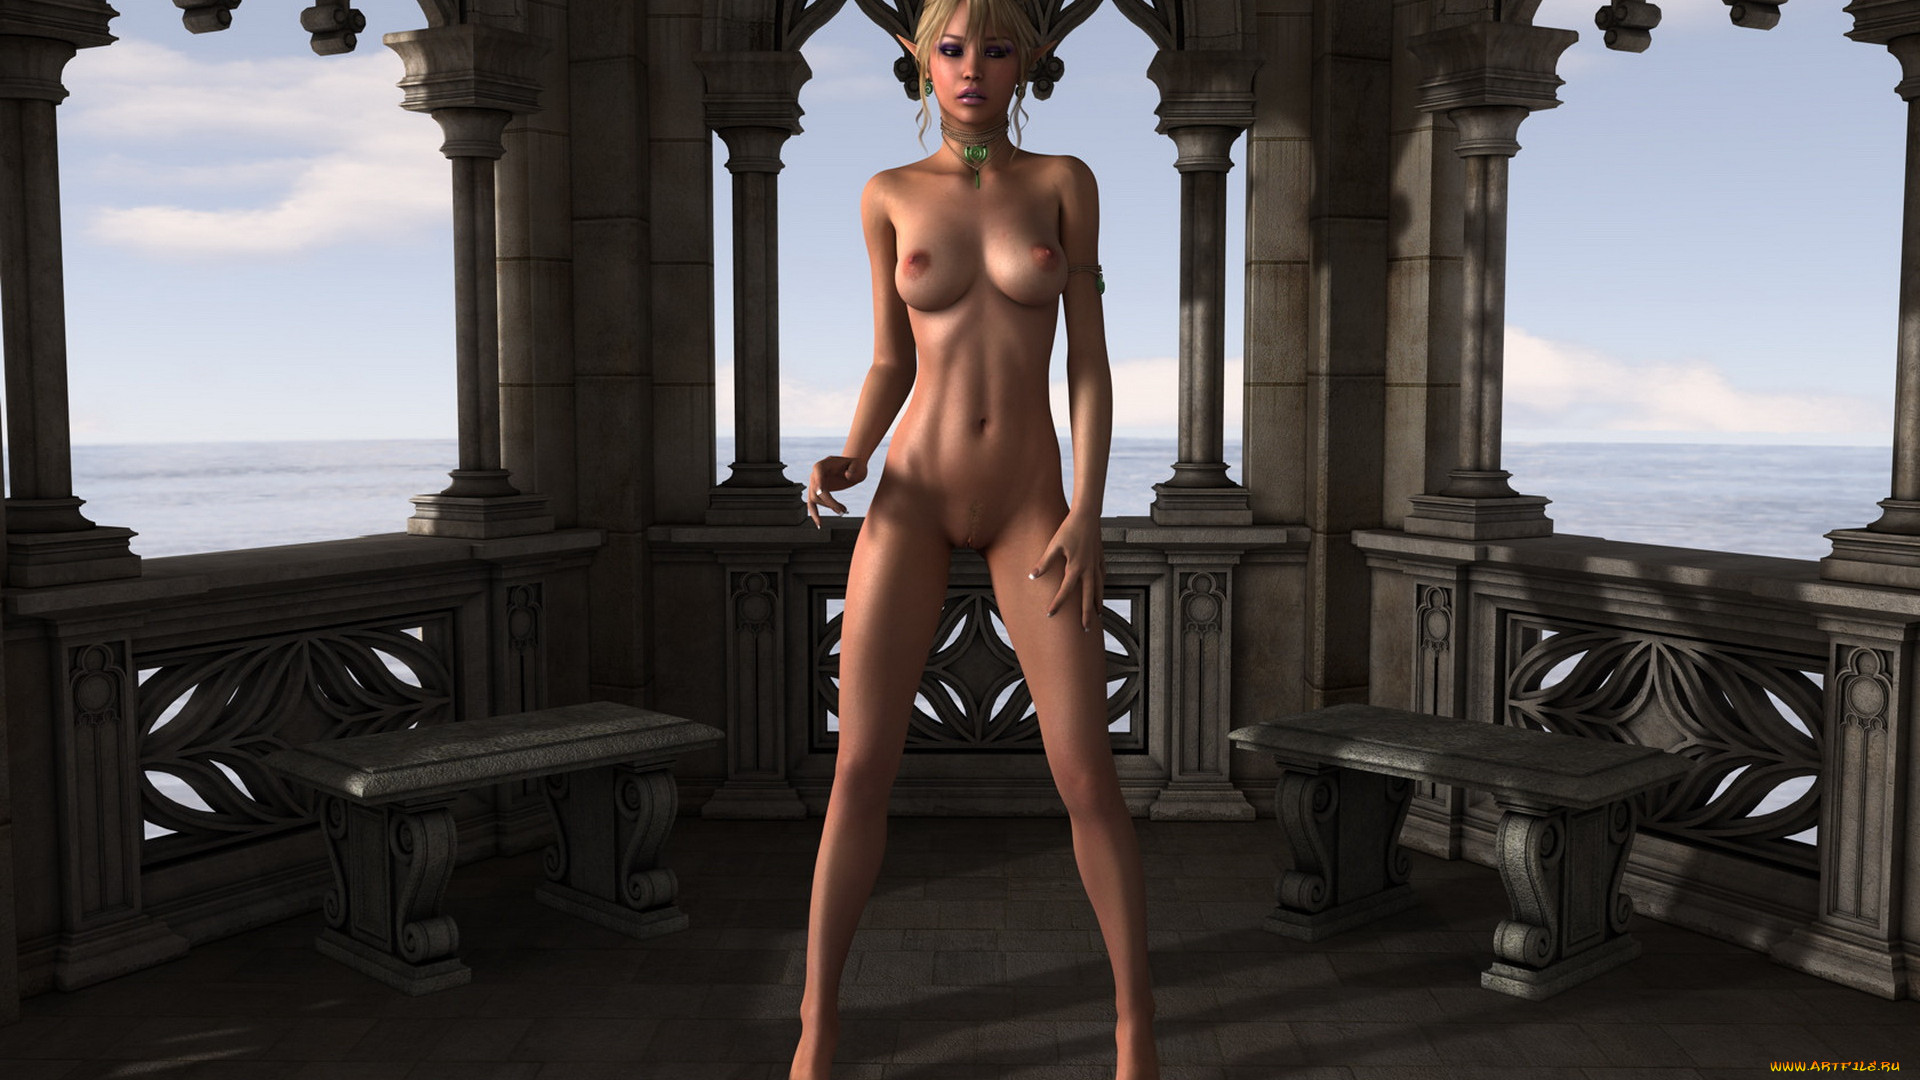 Elf female nude 3d sex sexy photos